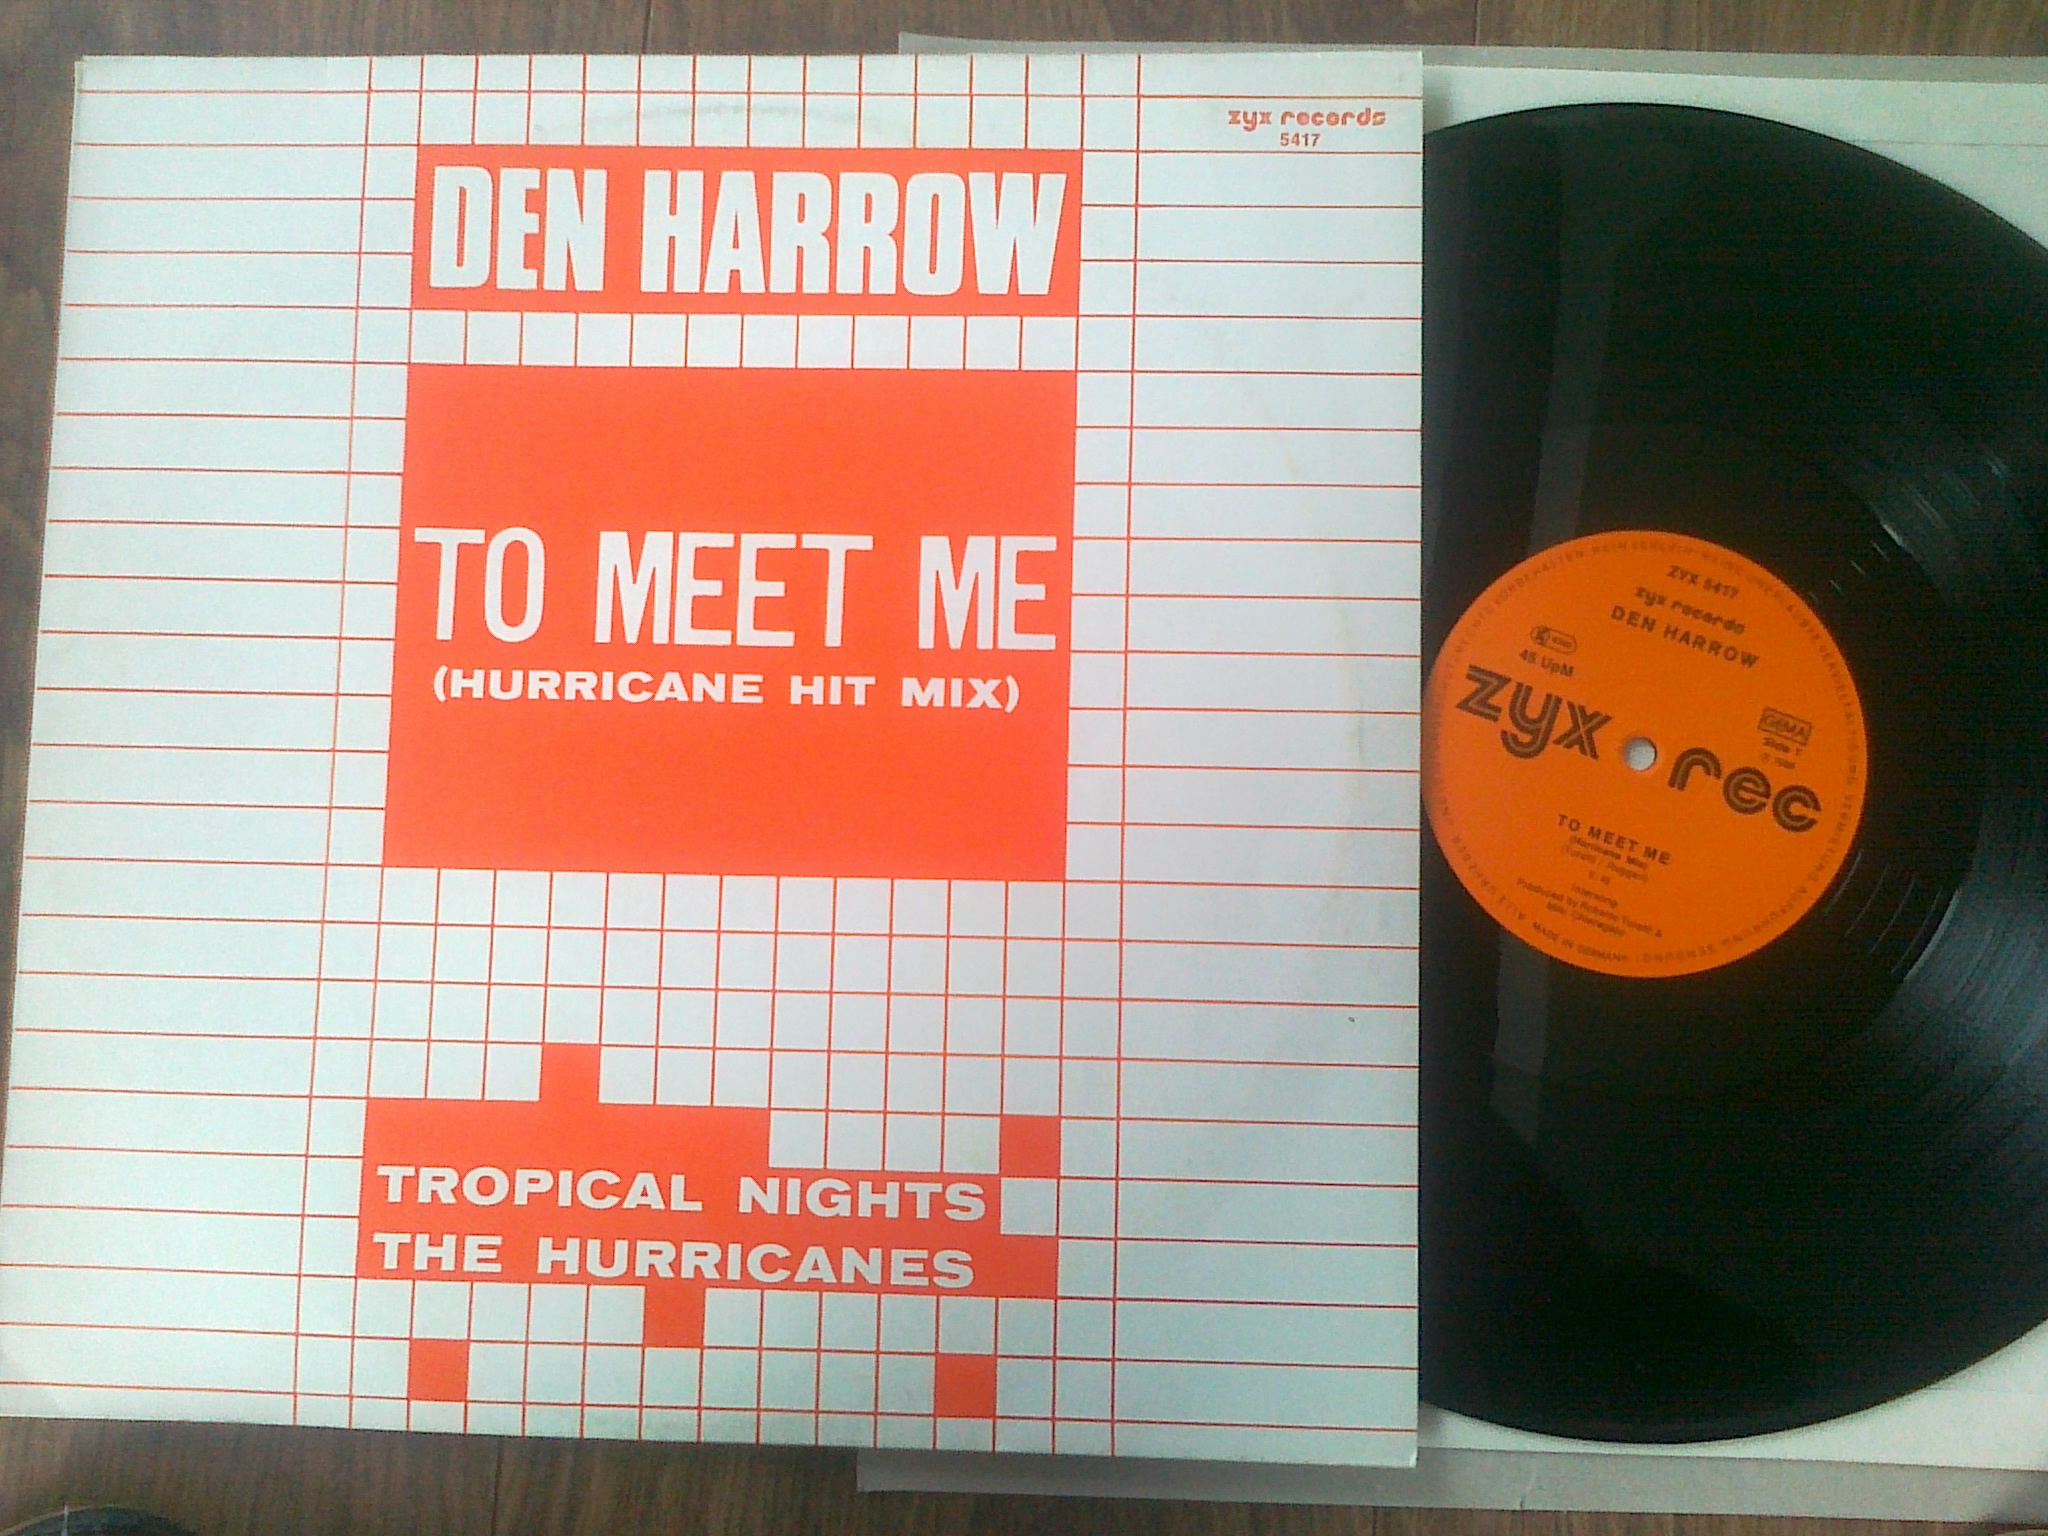 Den Harrow - To Meet Me (Hurricane Hit Mix)